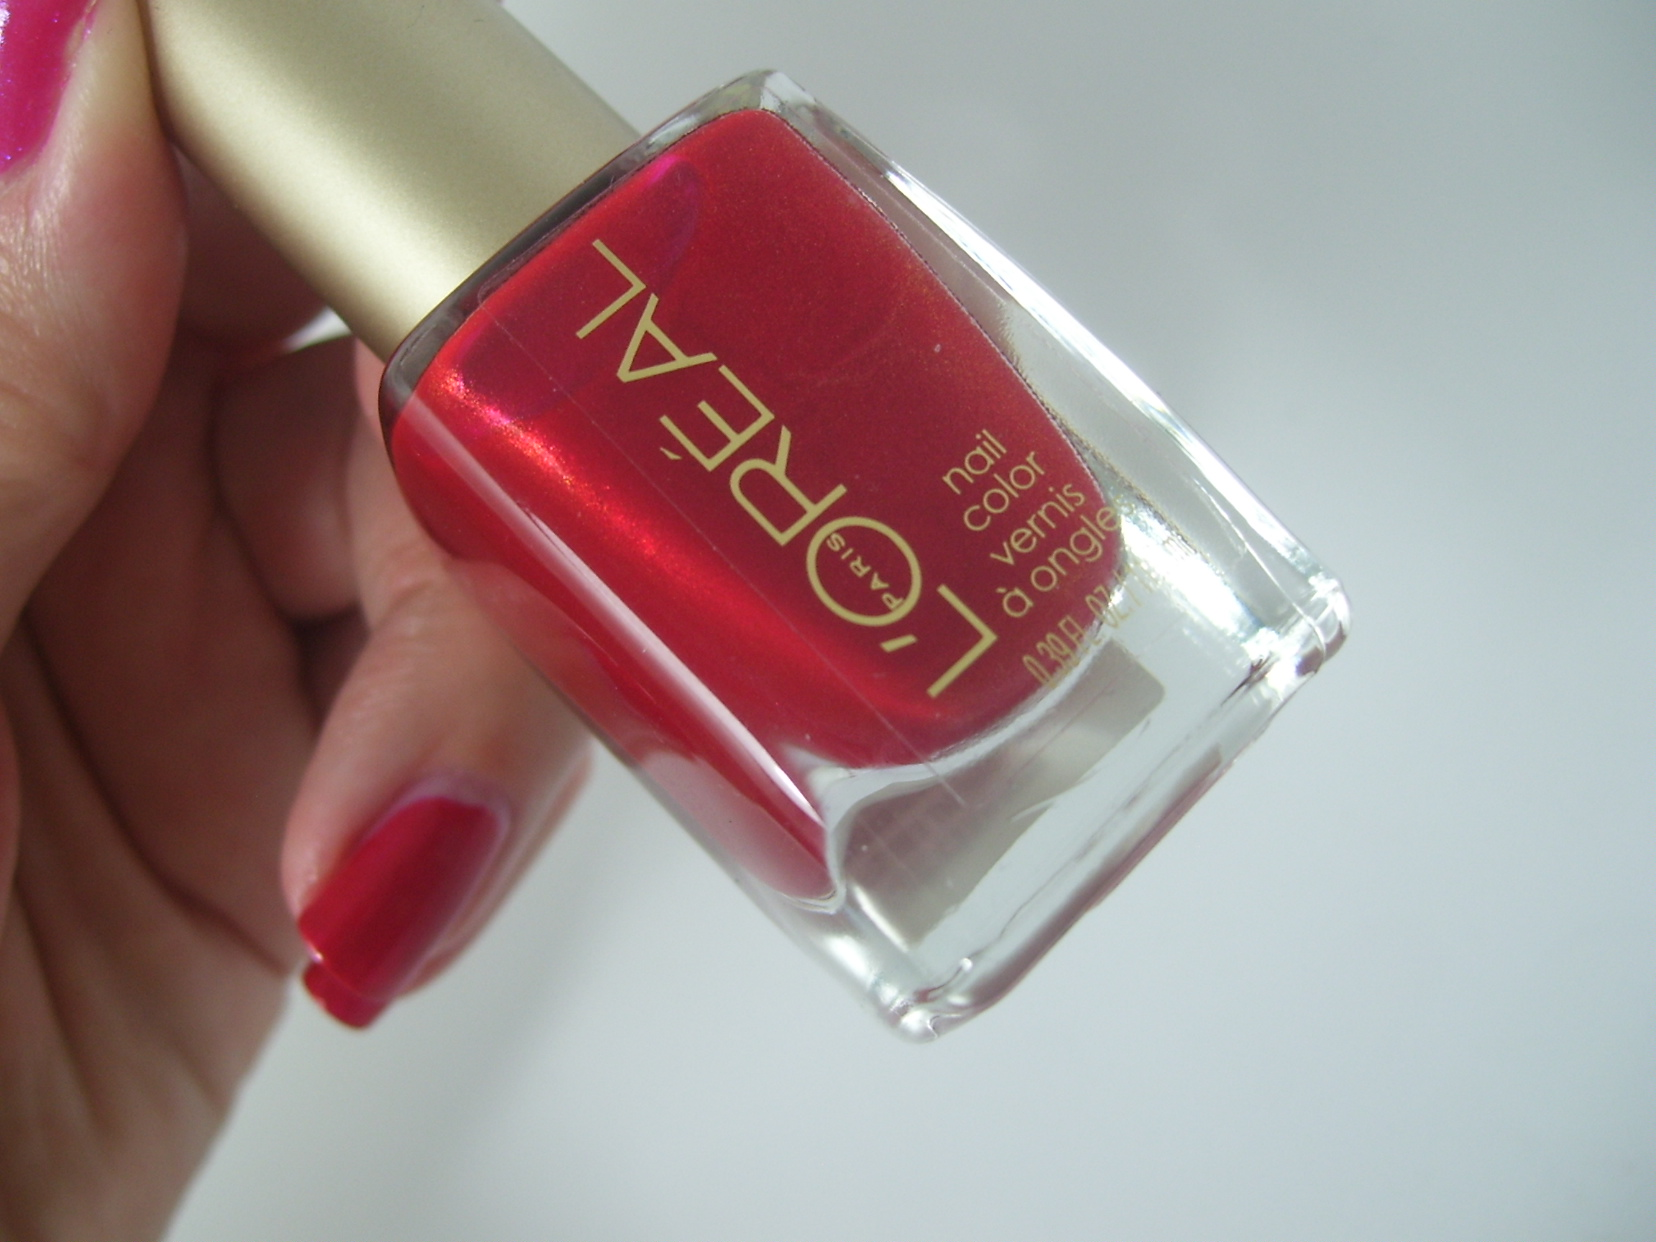 L'Oreal Paris Colour Riche Nail Color - He Red My Mind - My Highest Self